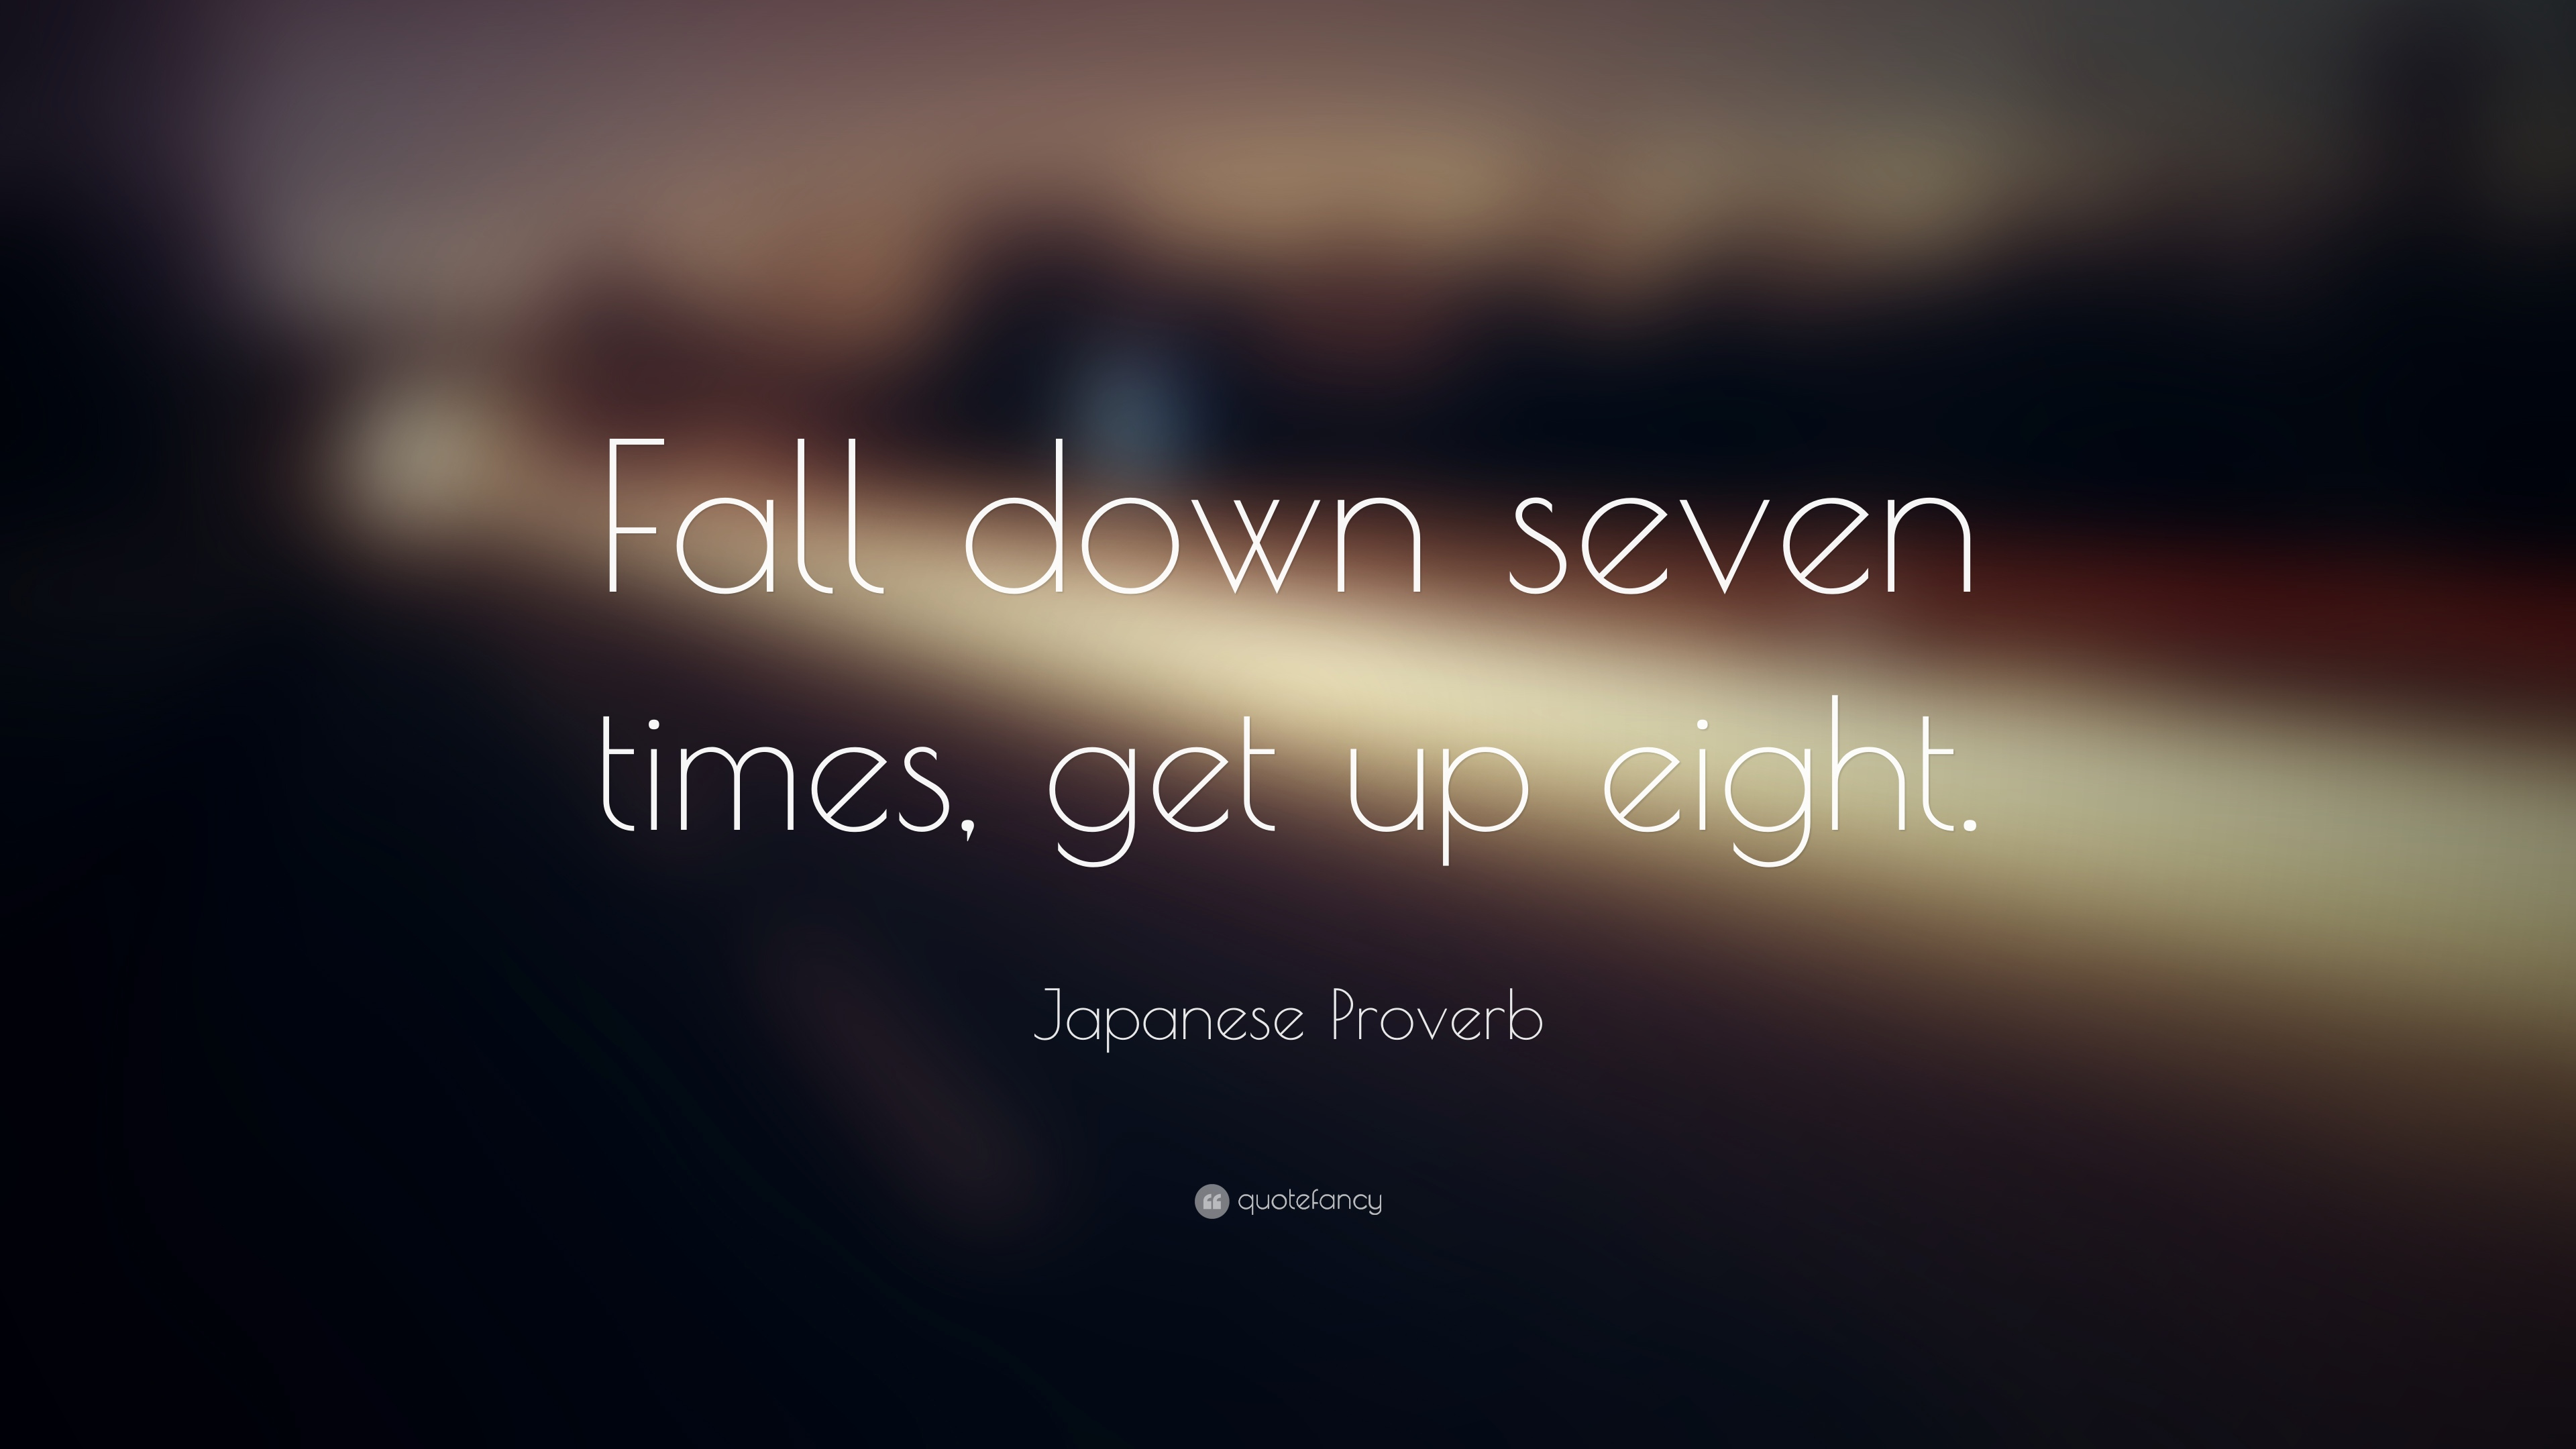 Japanese Proverb Quote: U201cFall Down Seven Times, Get Up Eight.u201d